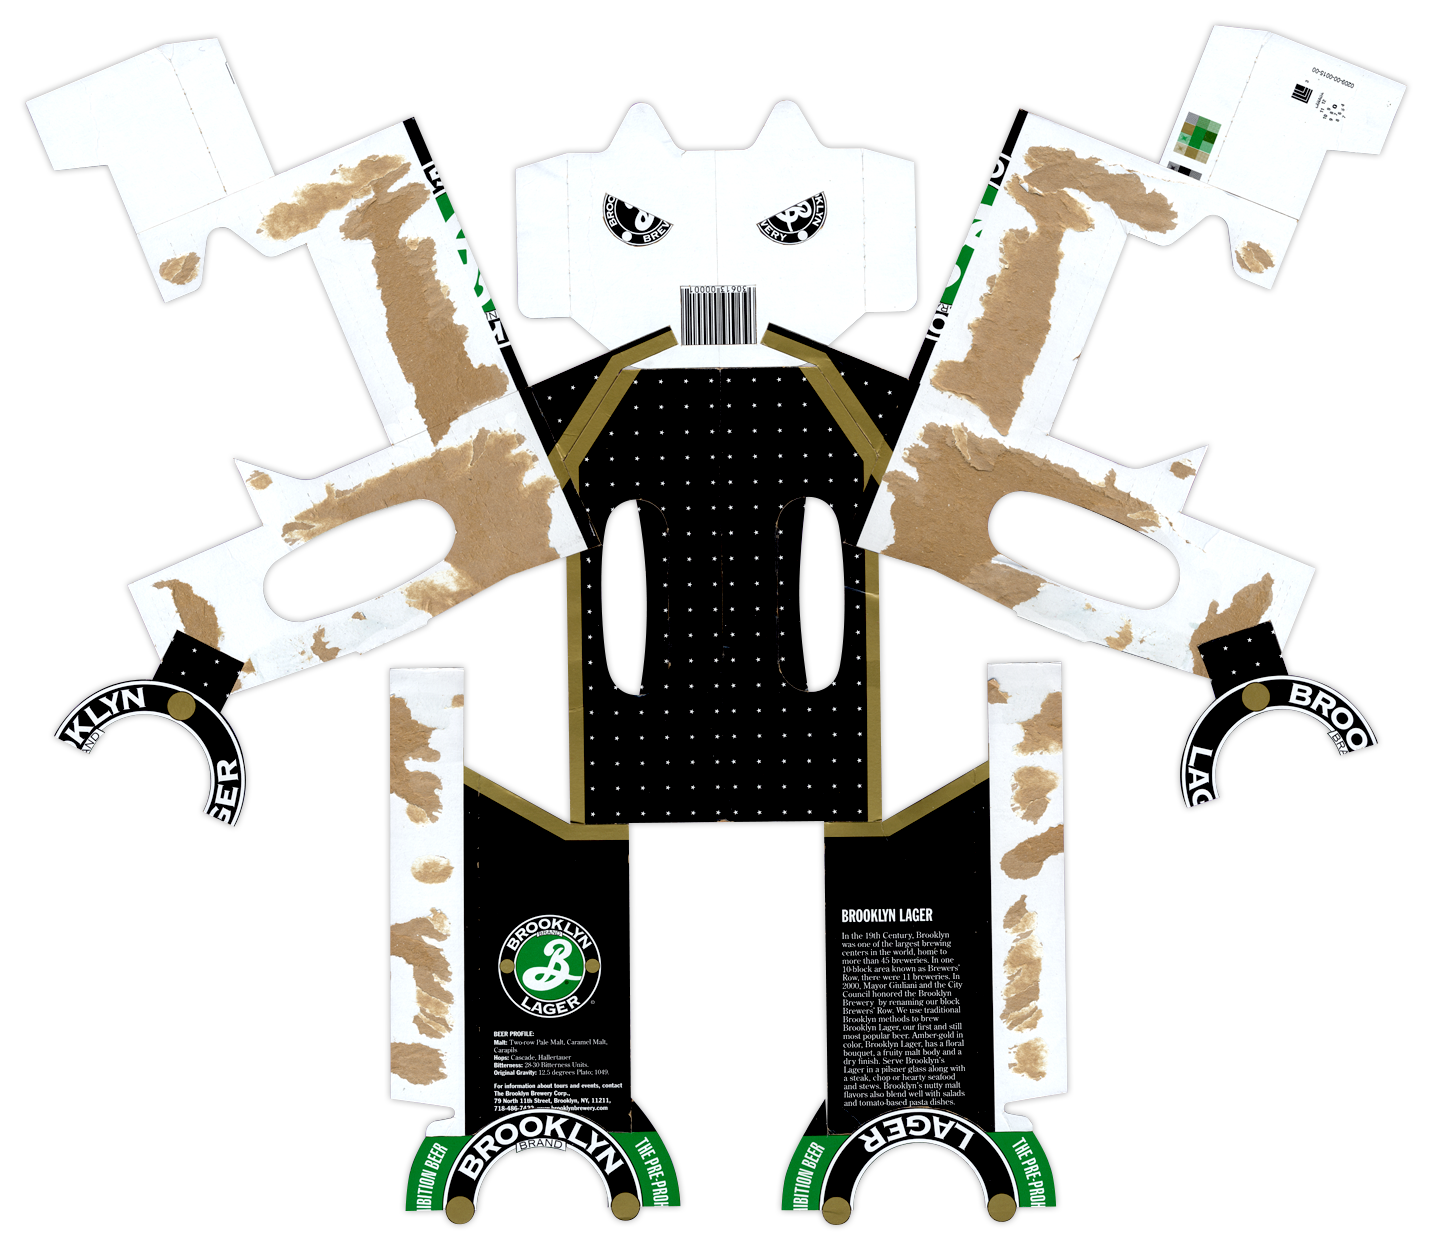 Brooklyn Lager BoxBot